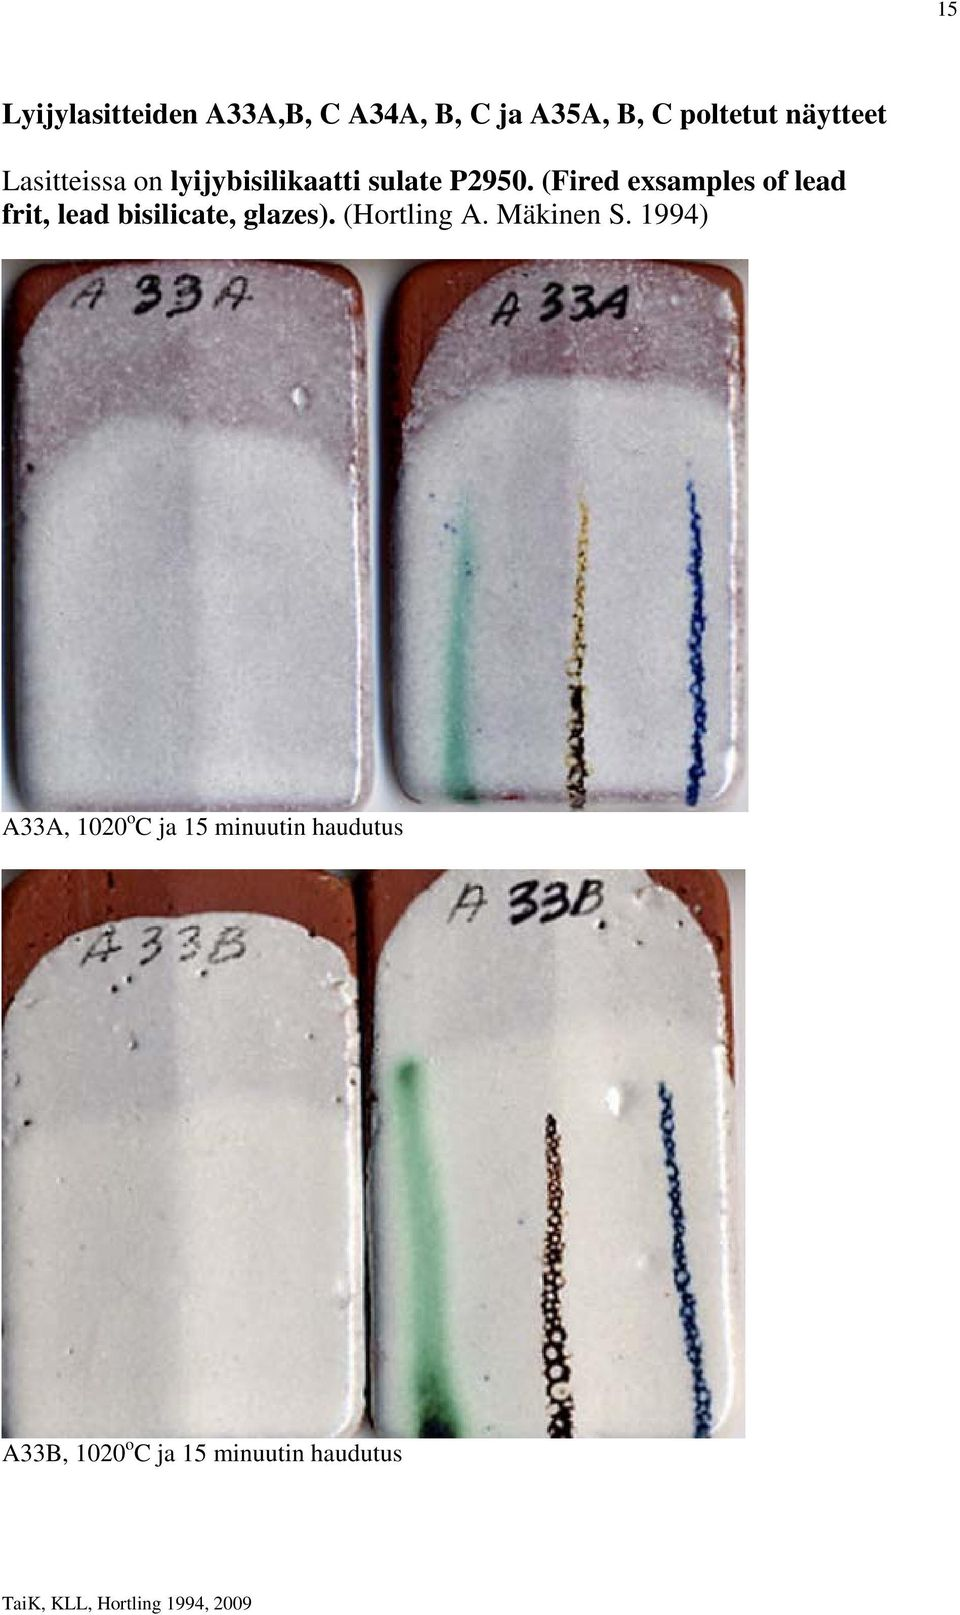 (Fired exsamples of lead frit, lead bisilicate, glazes). (Hortling A.